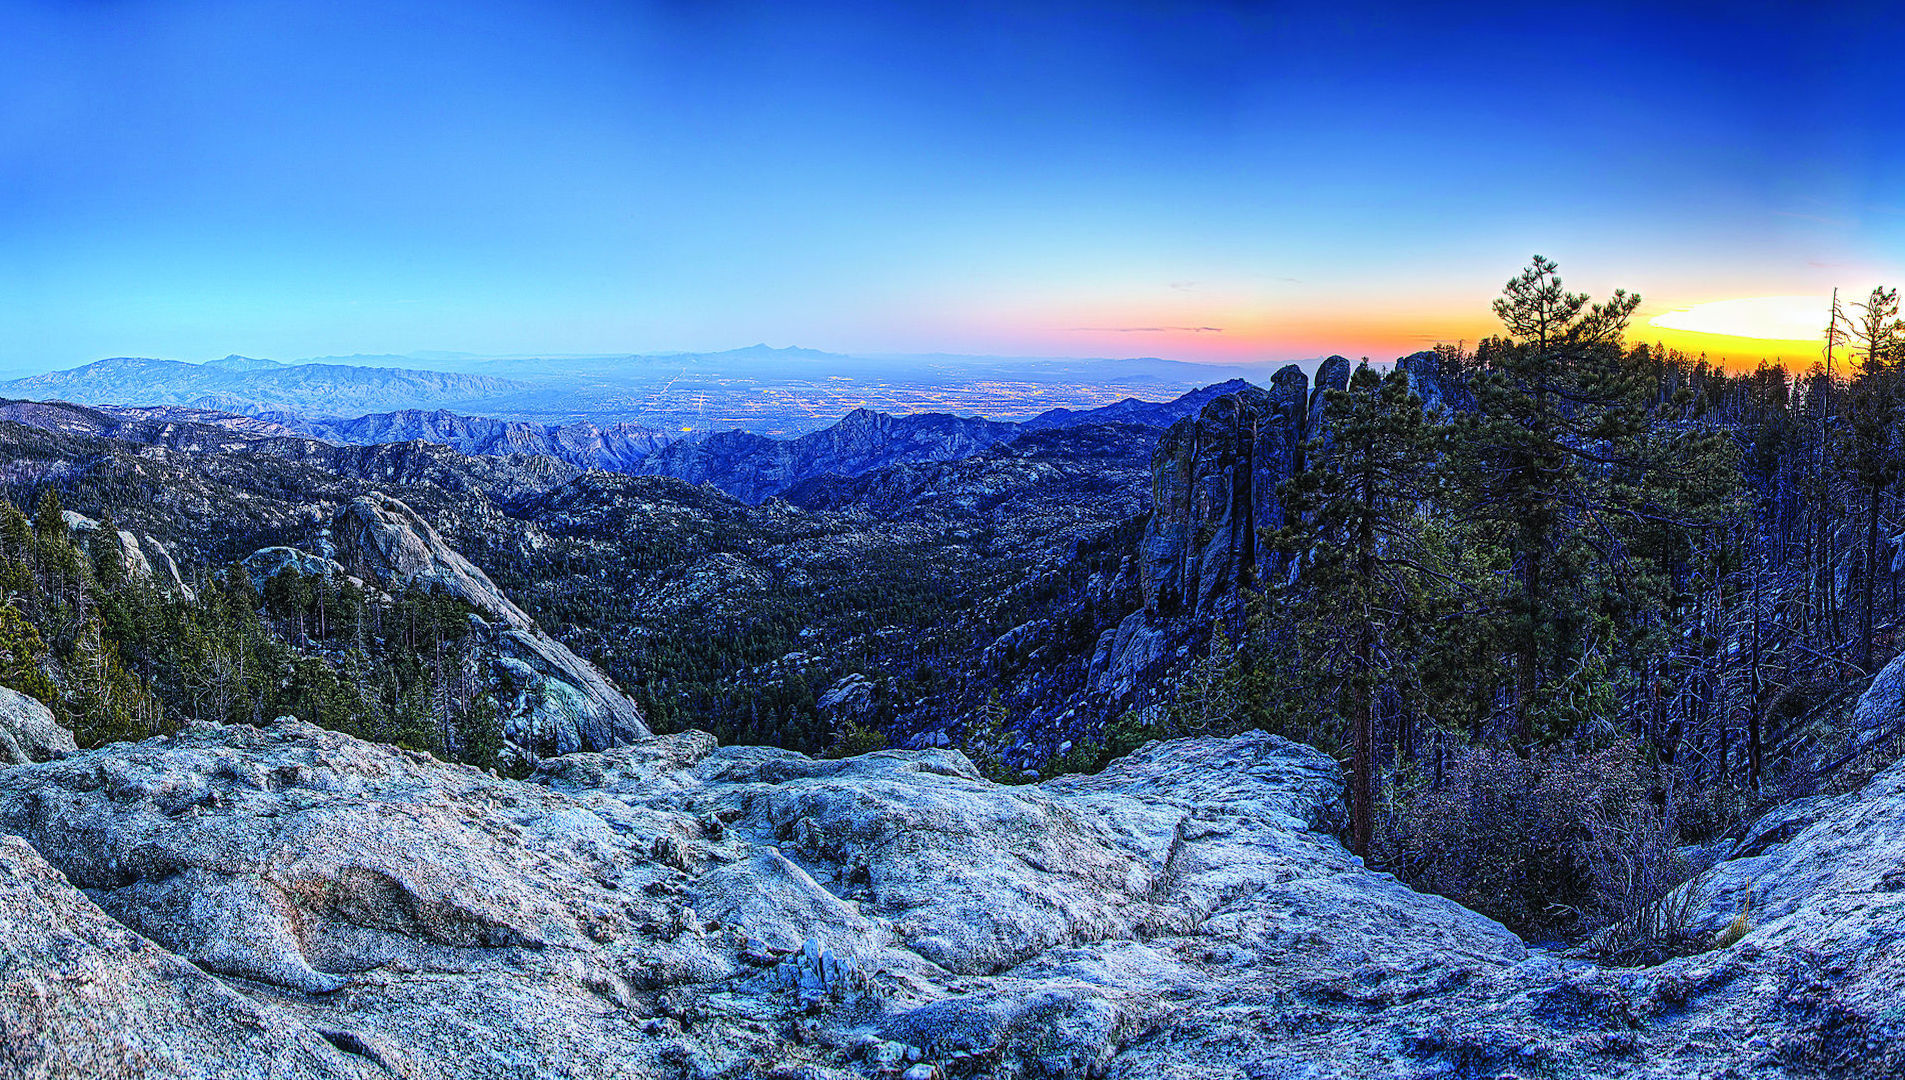 The granite gray summit of Mount Lemmon topped with vibrant colorful streaks across a cold morning sky.